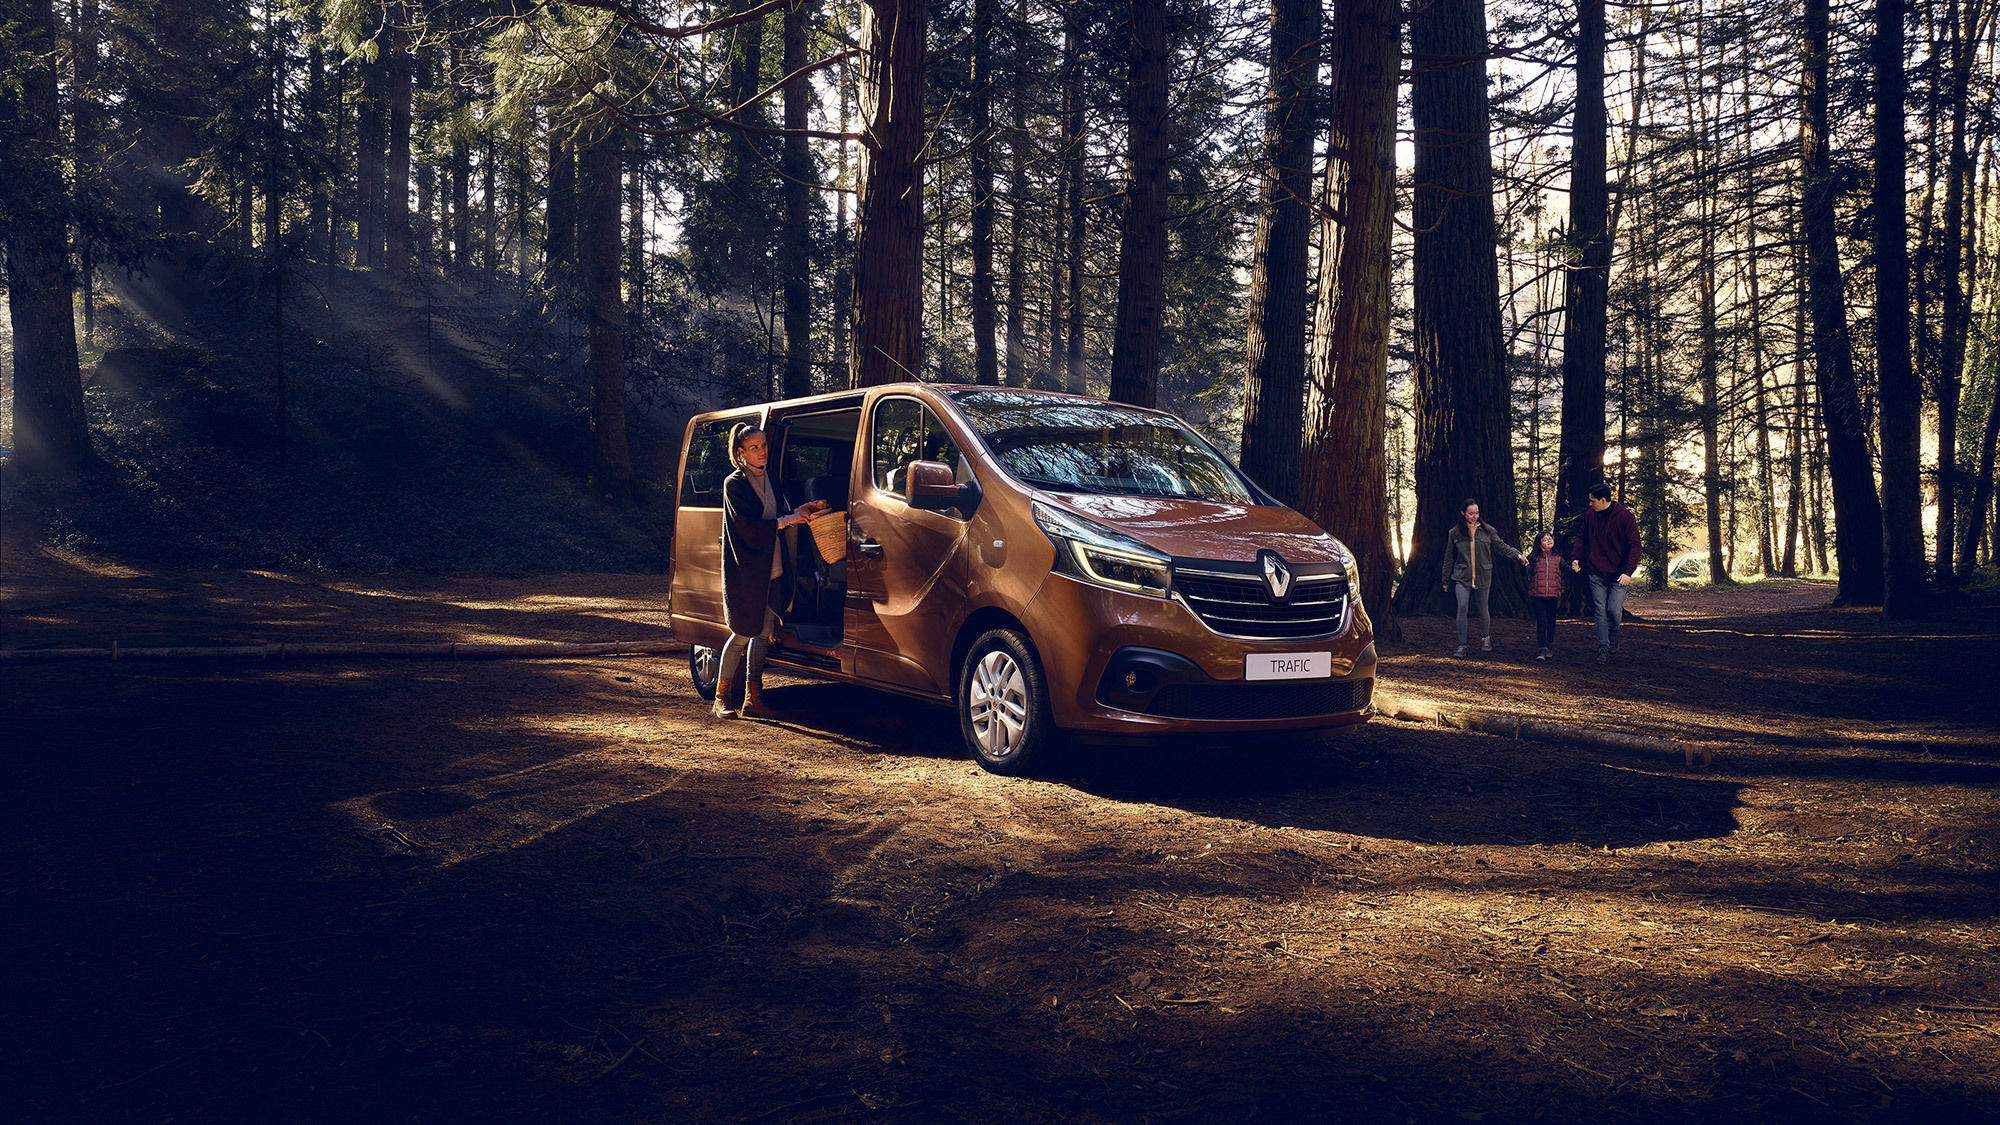 UPFRONT PHOTO & FILM GMBH: Thomas Motta for RENAULT